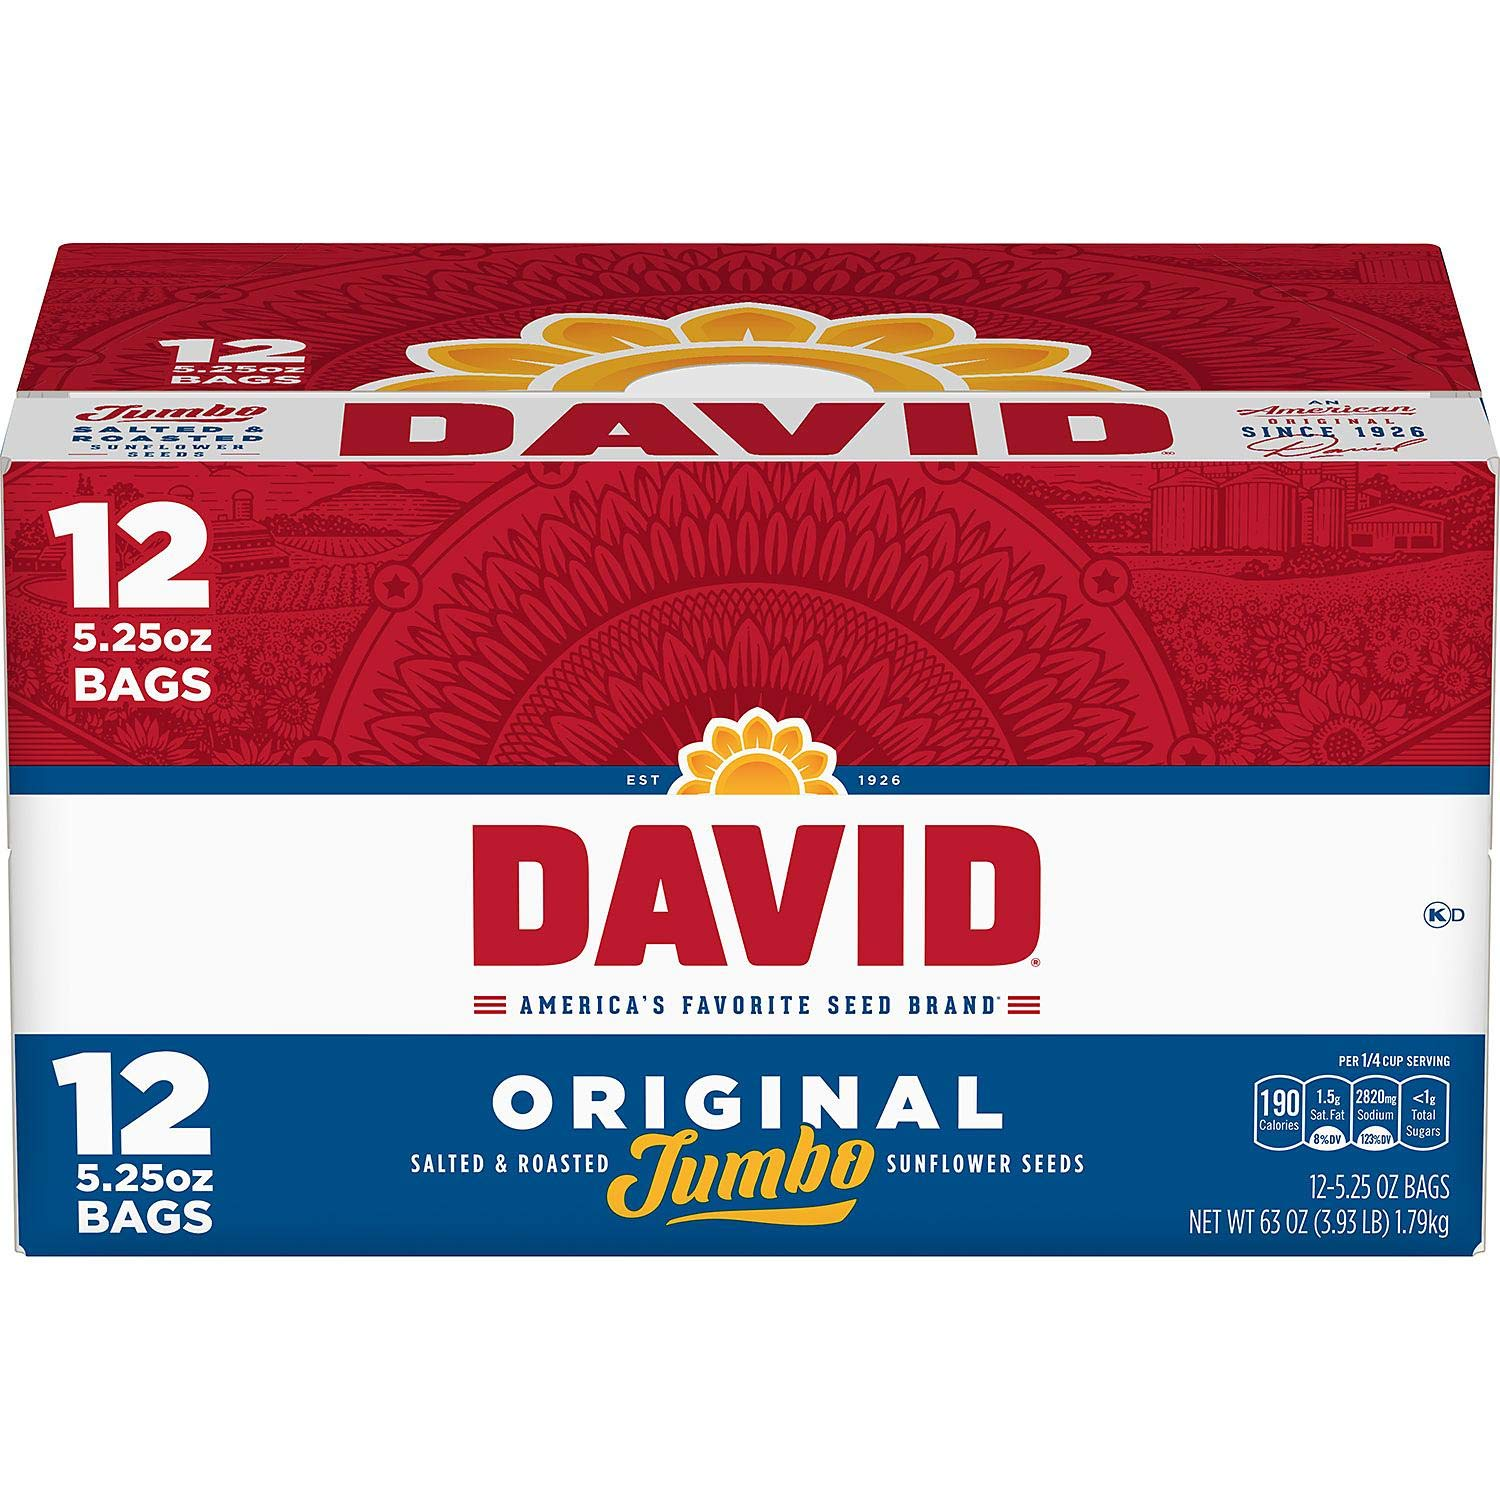 DAVID Roasted and Salted Original Sunflower Seeds, Keto Friendly, 5.25 oz, 12 Pack